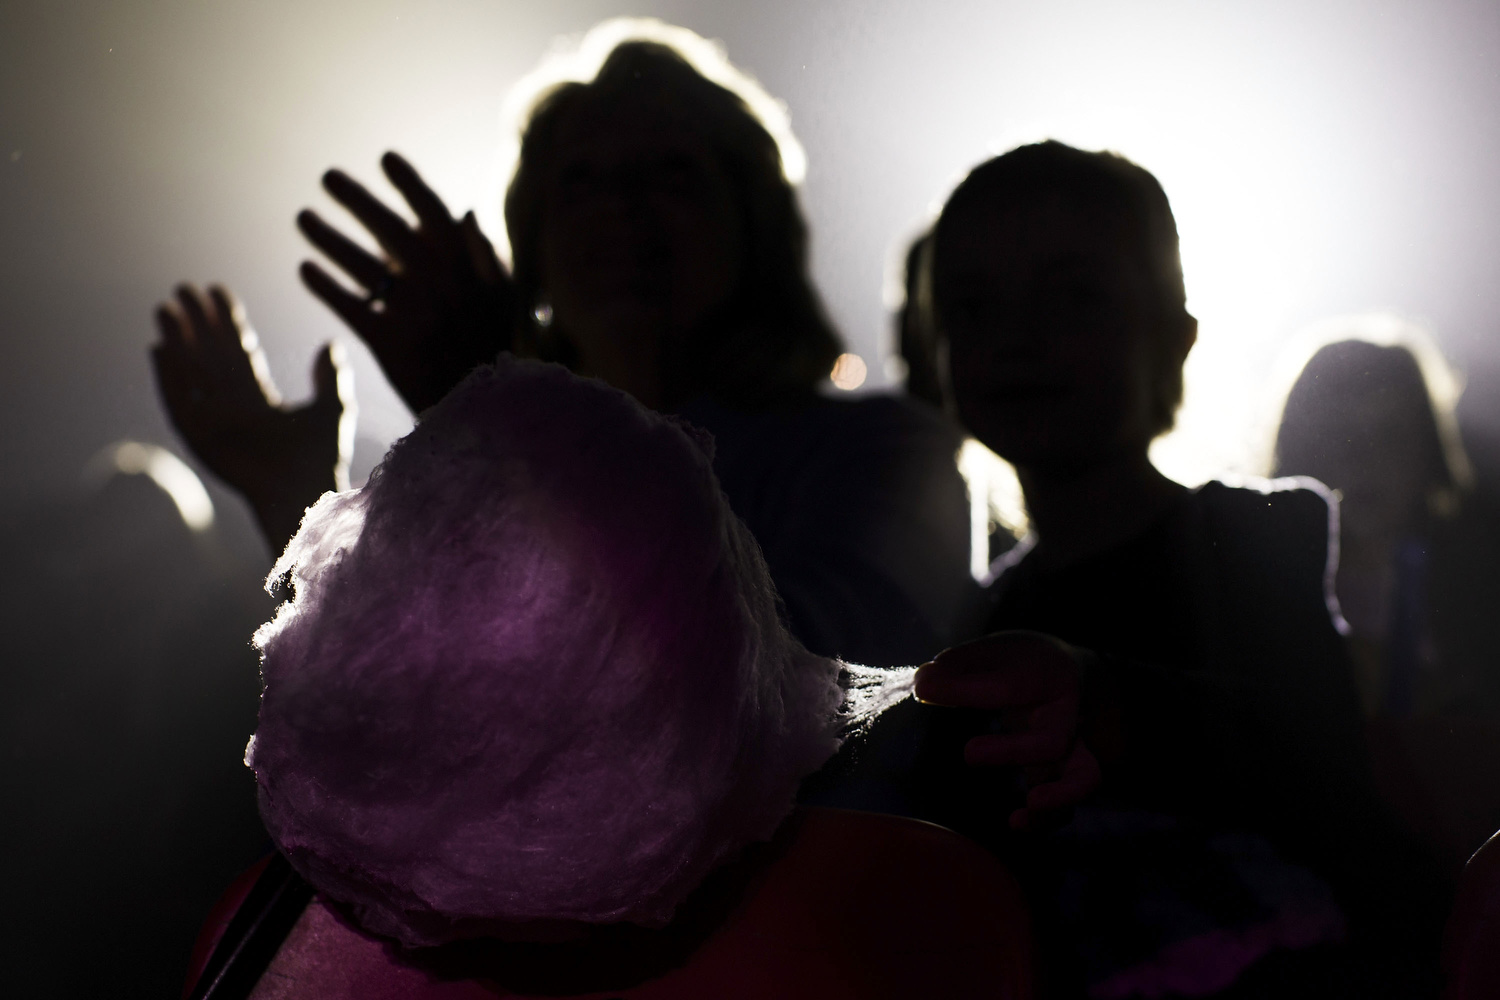 A  kid  takes a chunk of  marshmallow  as the  audience  clap during a  show  taking place at  Gran Circo Mundial circus  on November 29, 2015 in Madrid, Spain.  Gran Circo Mundial  is a 40 years-old Spanish  circus  where  famil y lifes and stories have mixed together across the time. From the  trapeze  artists of the  Pyongyang National Circus  to the  Rampin  family descendants,  clown s,  magician s or aerial  permormer s share the  stage  and part of their private lifes. Their show was running inMadrid in Autumn 2015.